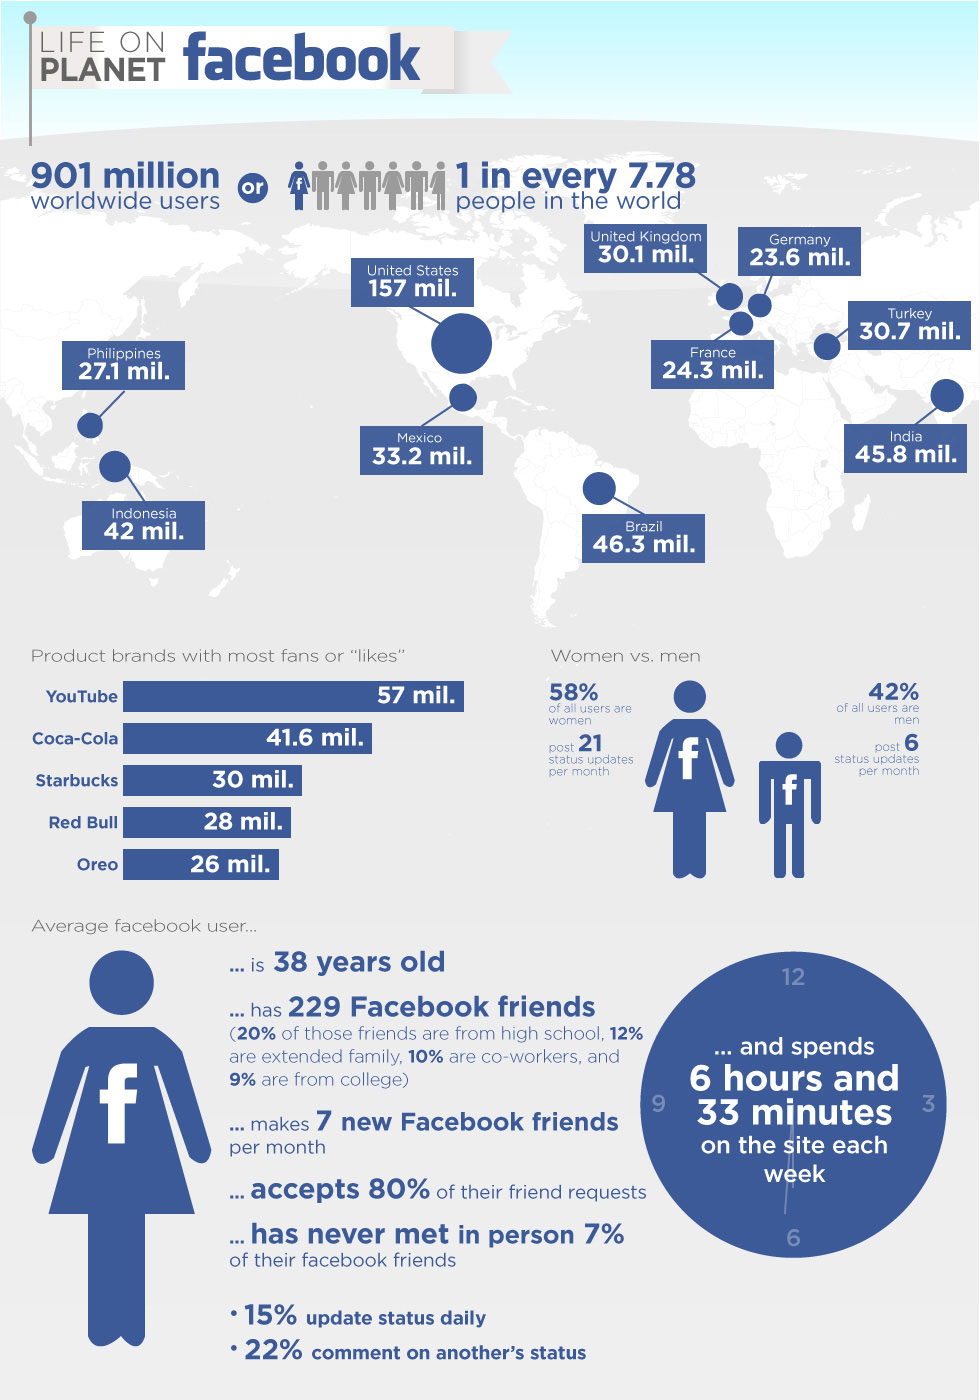 901 million worldwide users. 58% of all Facebook users are women, while 42% of Facebook users are men. Average Facebook user is 38 years old, has 229 facebook friends, and makes 7 new facebook friends per month.